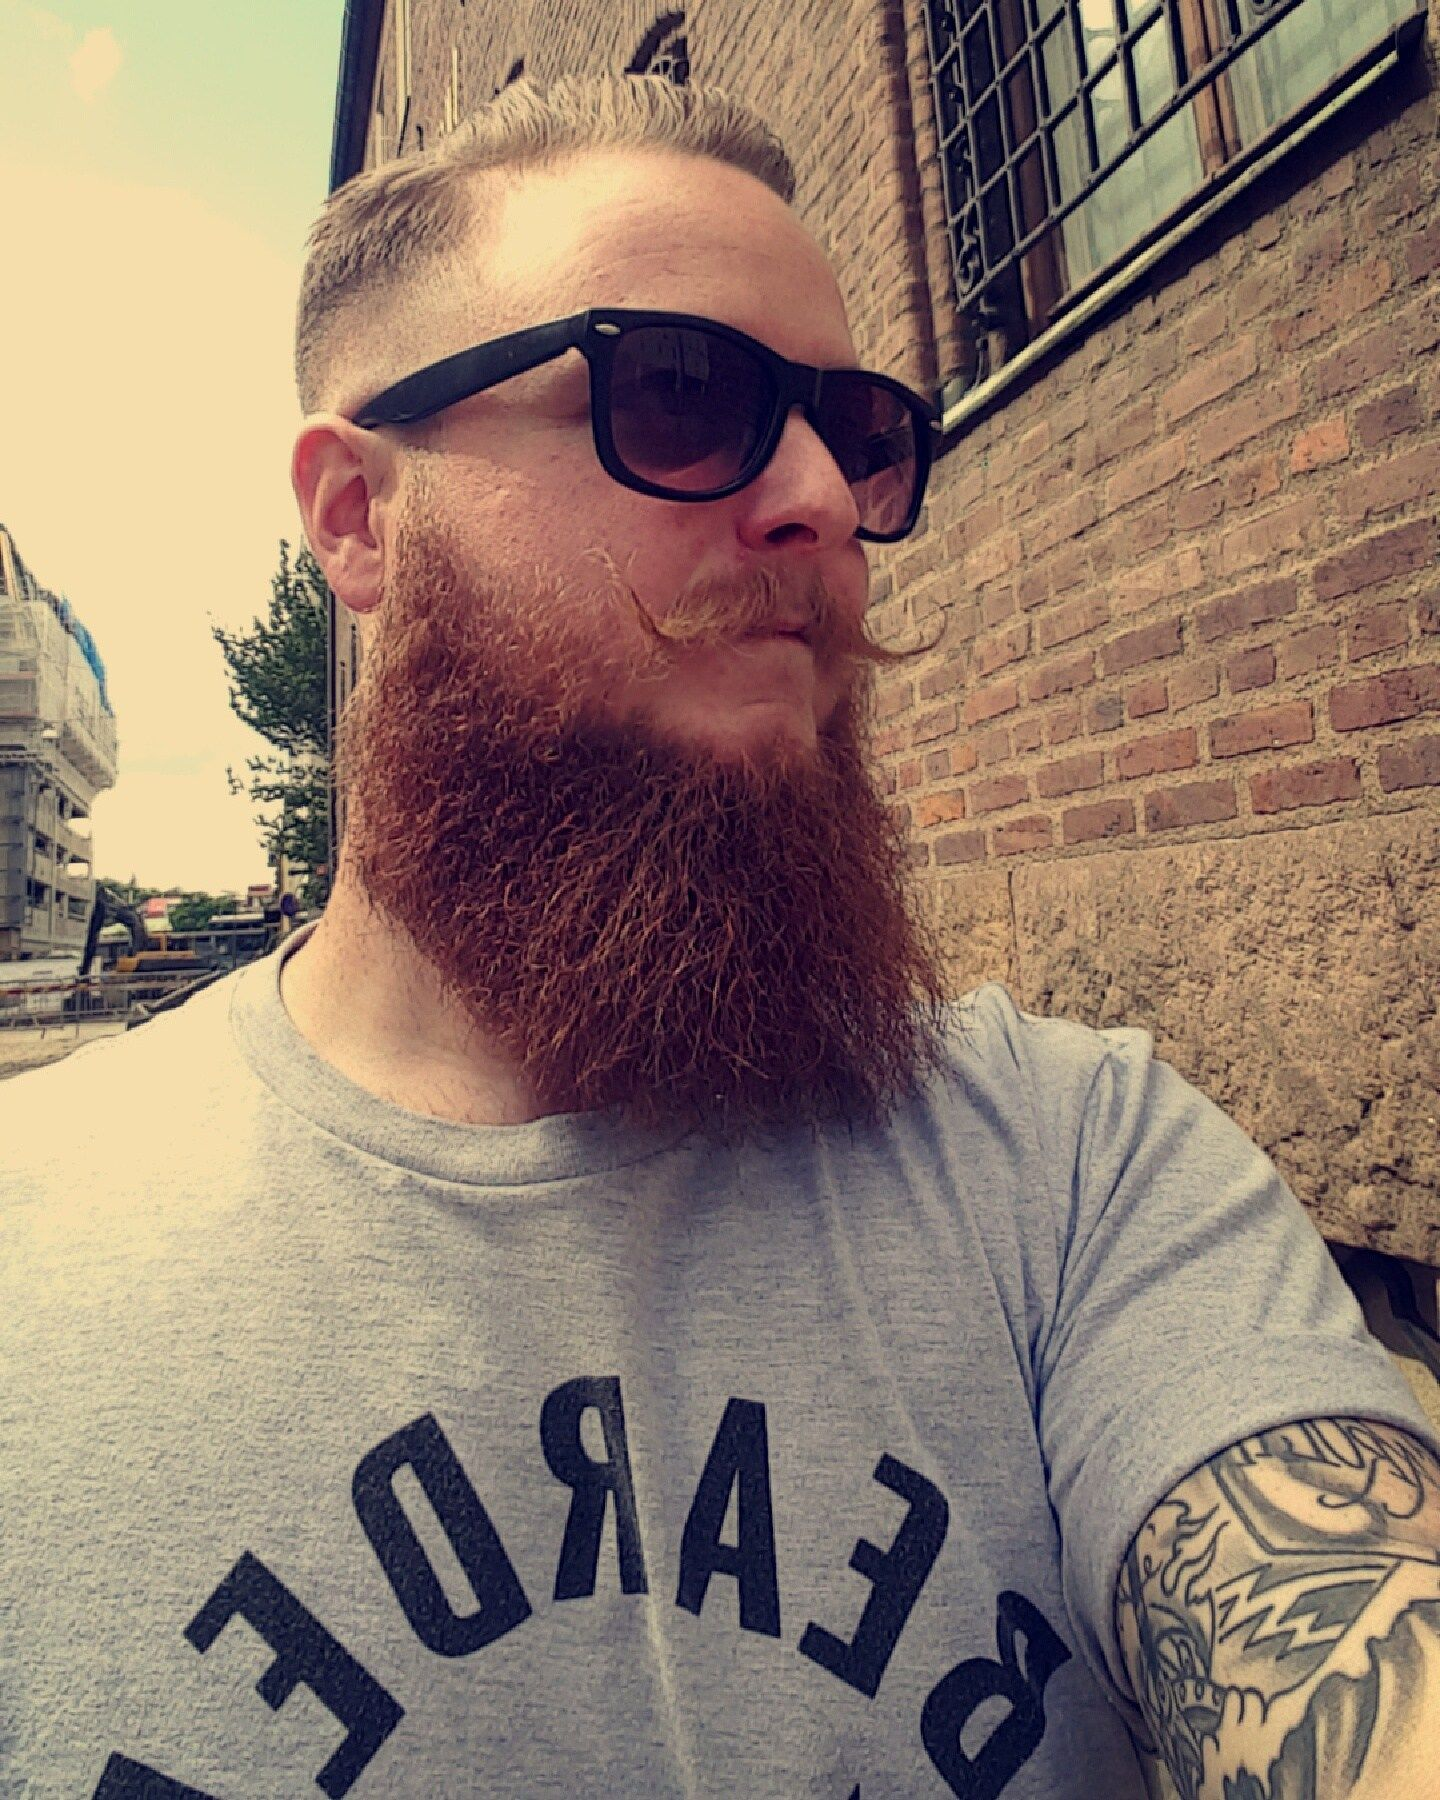 Visit Ratemybeard.se and check out @johanoolofsson - http://ratemybeard.se/johanoolofsson-9/ - support #heartbeard - Don't forget to vote, comment and please share this with your friends.